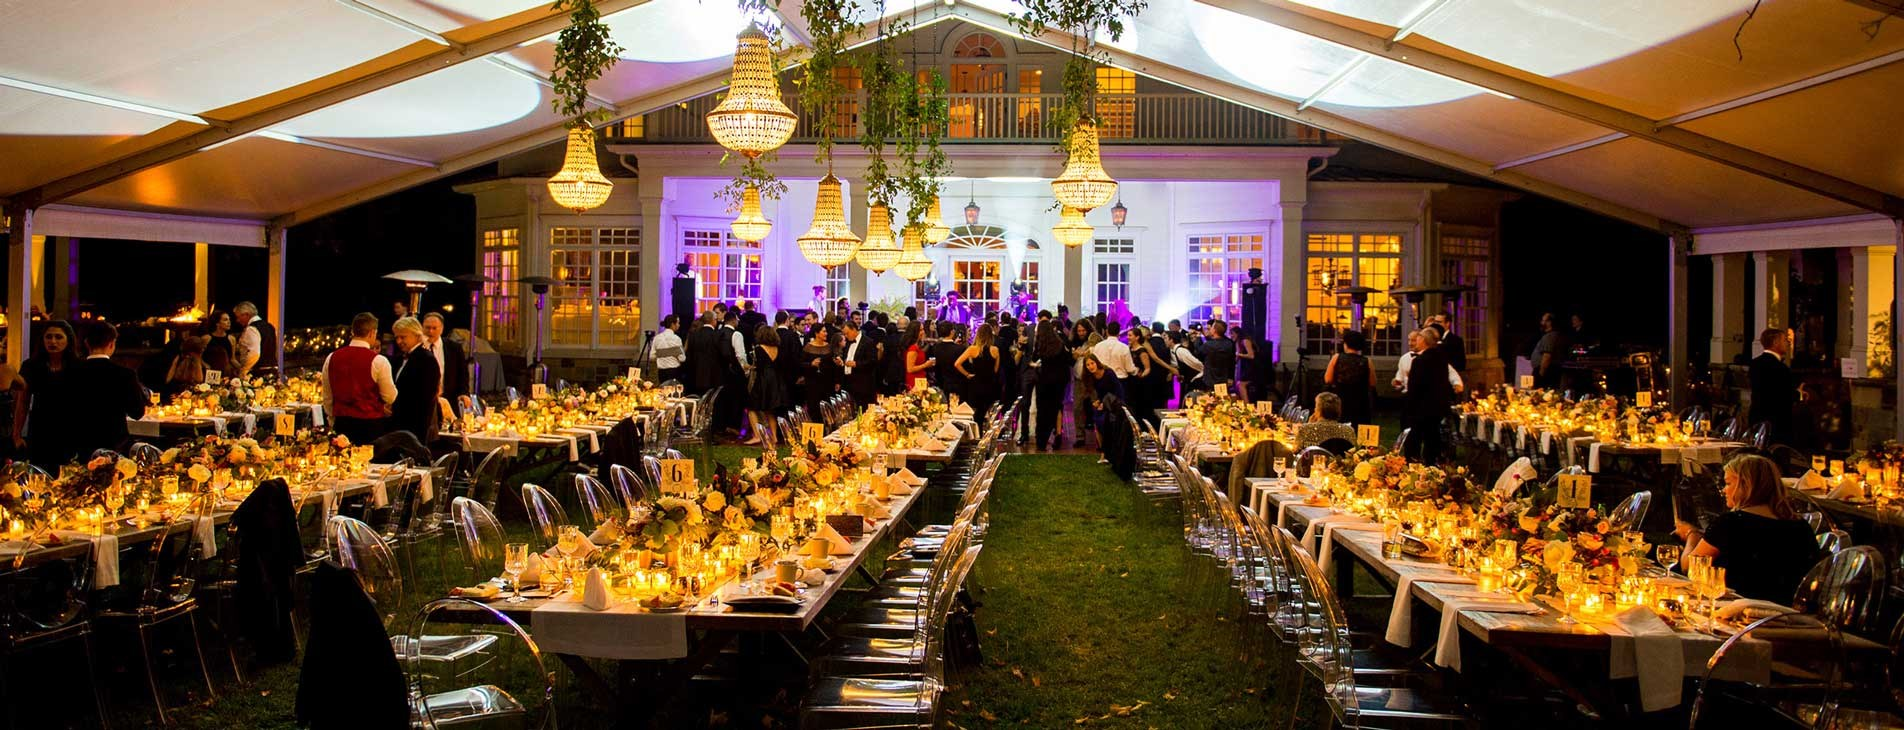 Crystal Catering an Off-site event at an outside venue